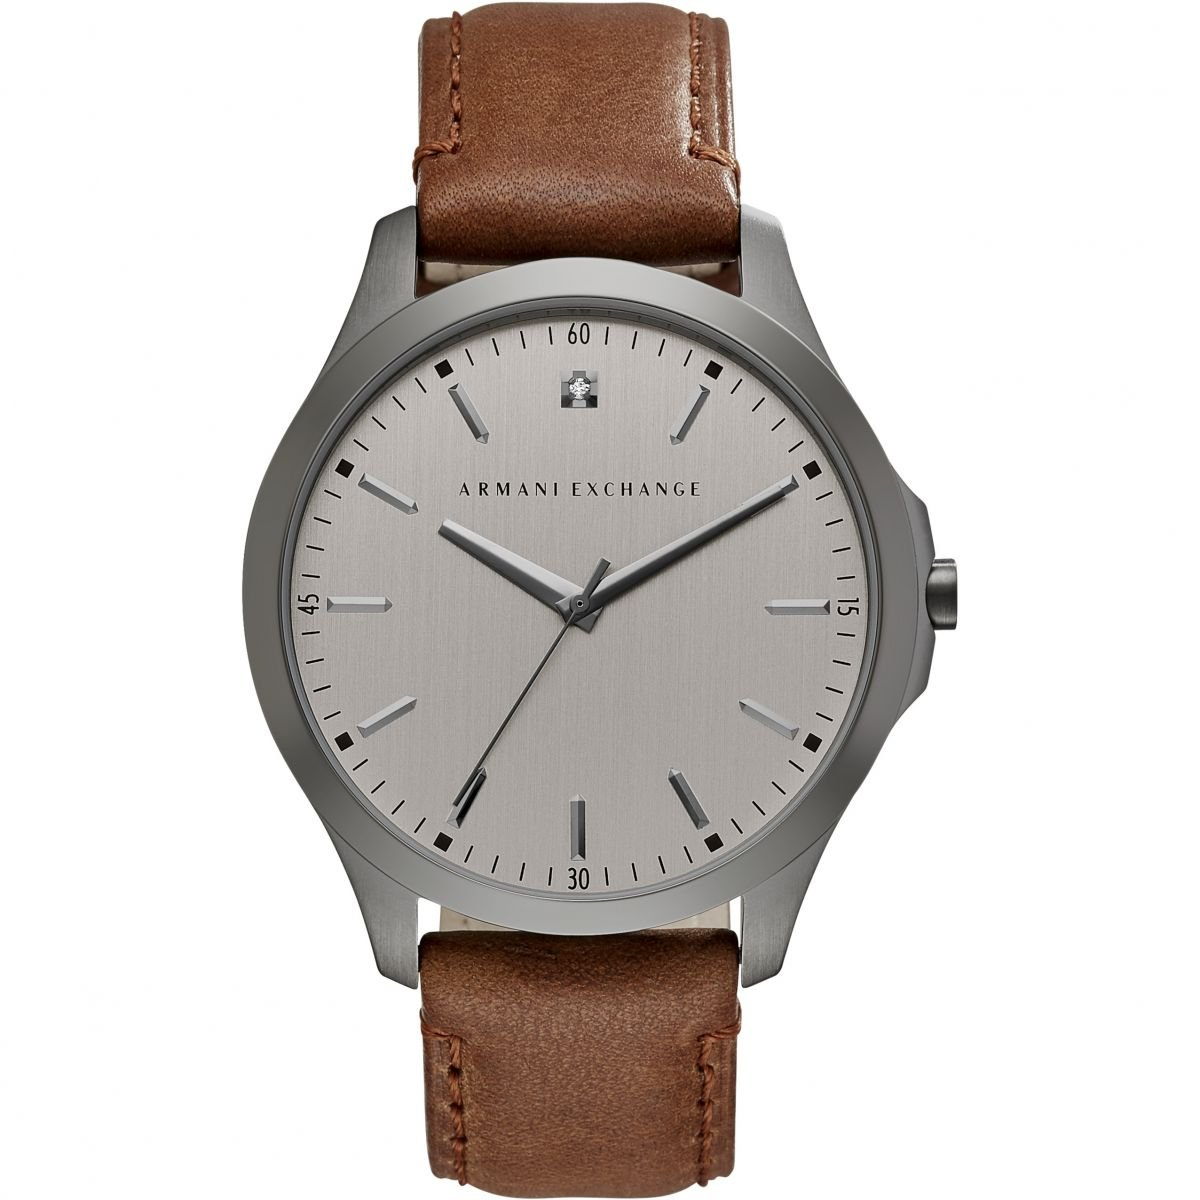 Hodinky ARMANI EXCHANGE Grey Dial Brown Leather Men's Watch